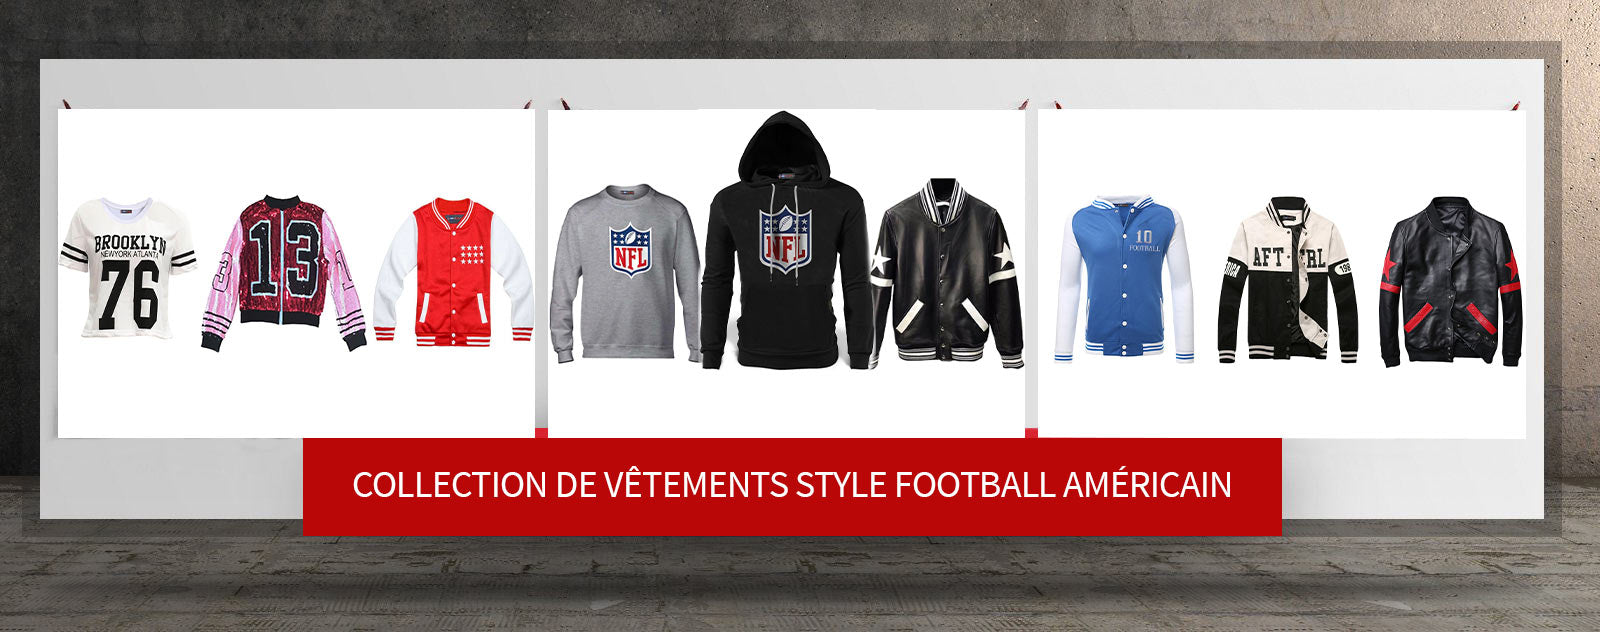 collection vetements style football americain